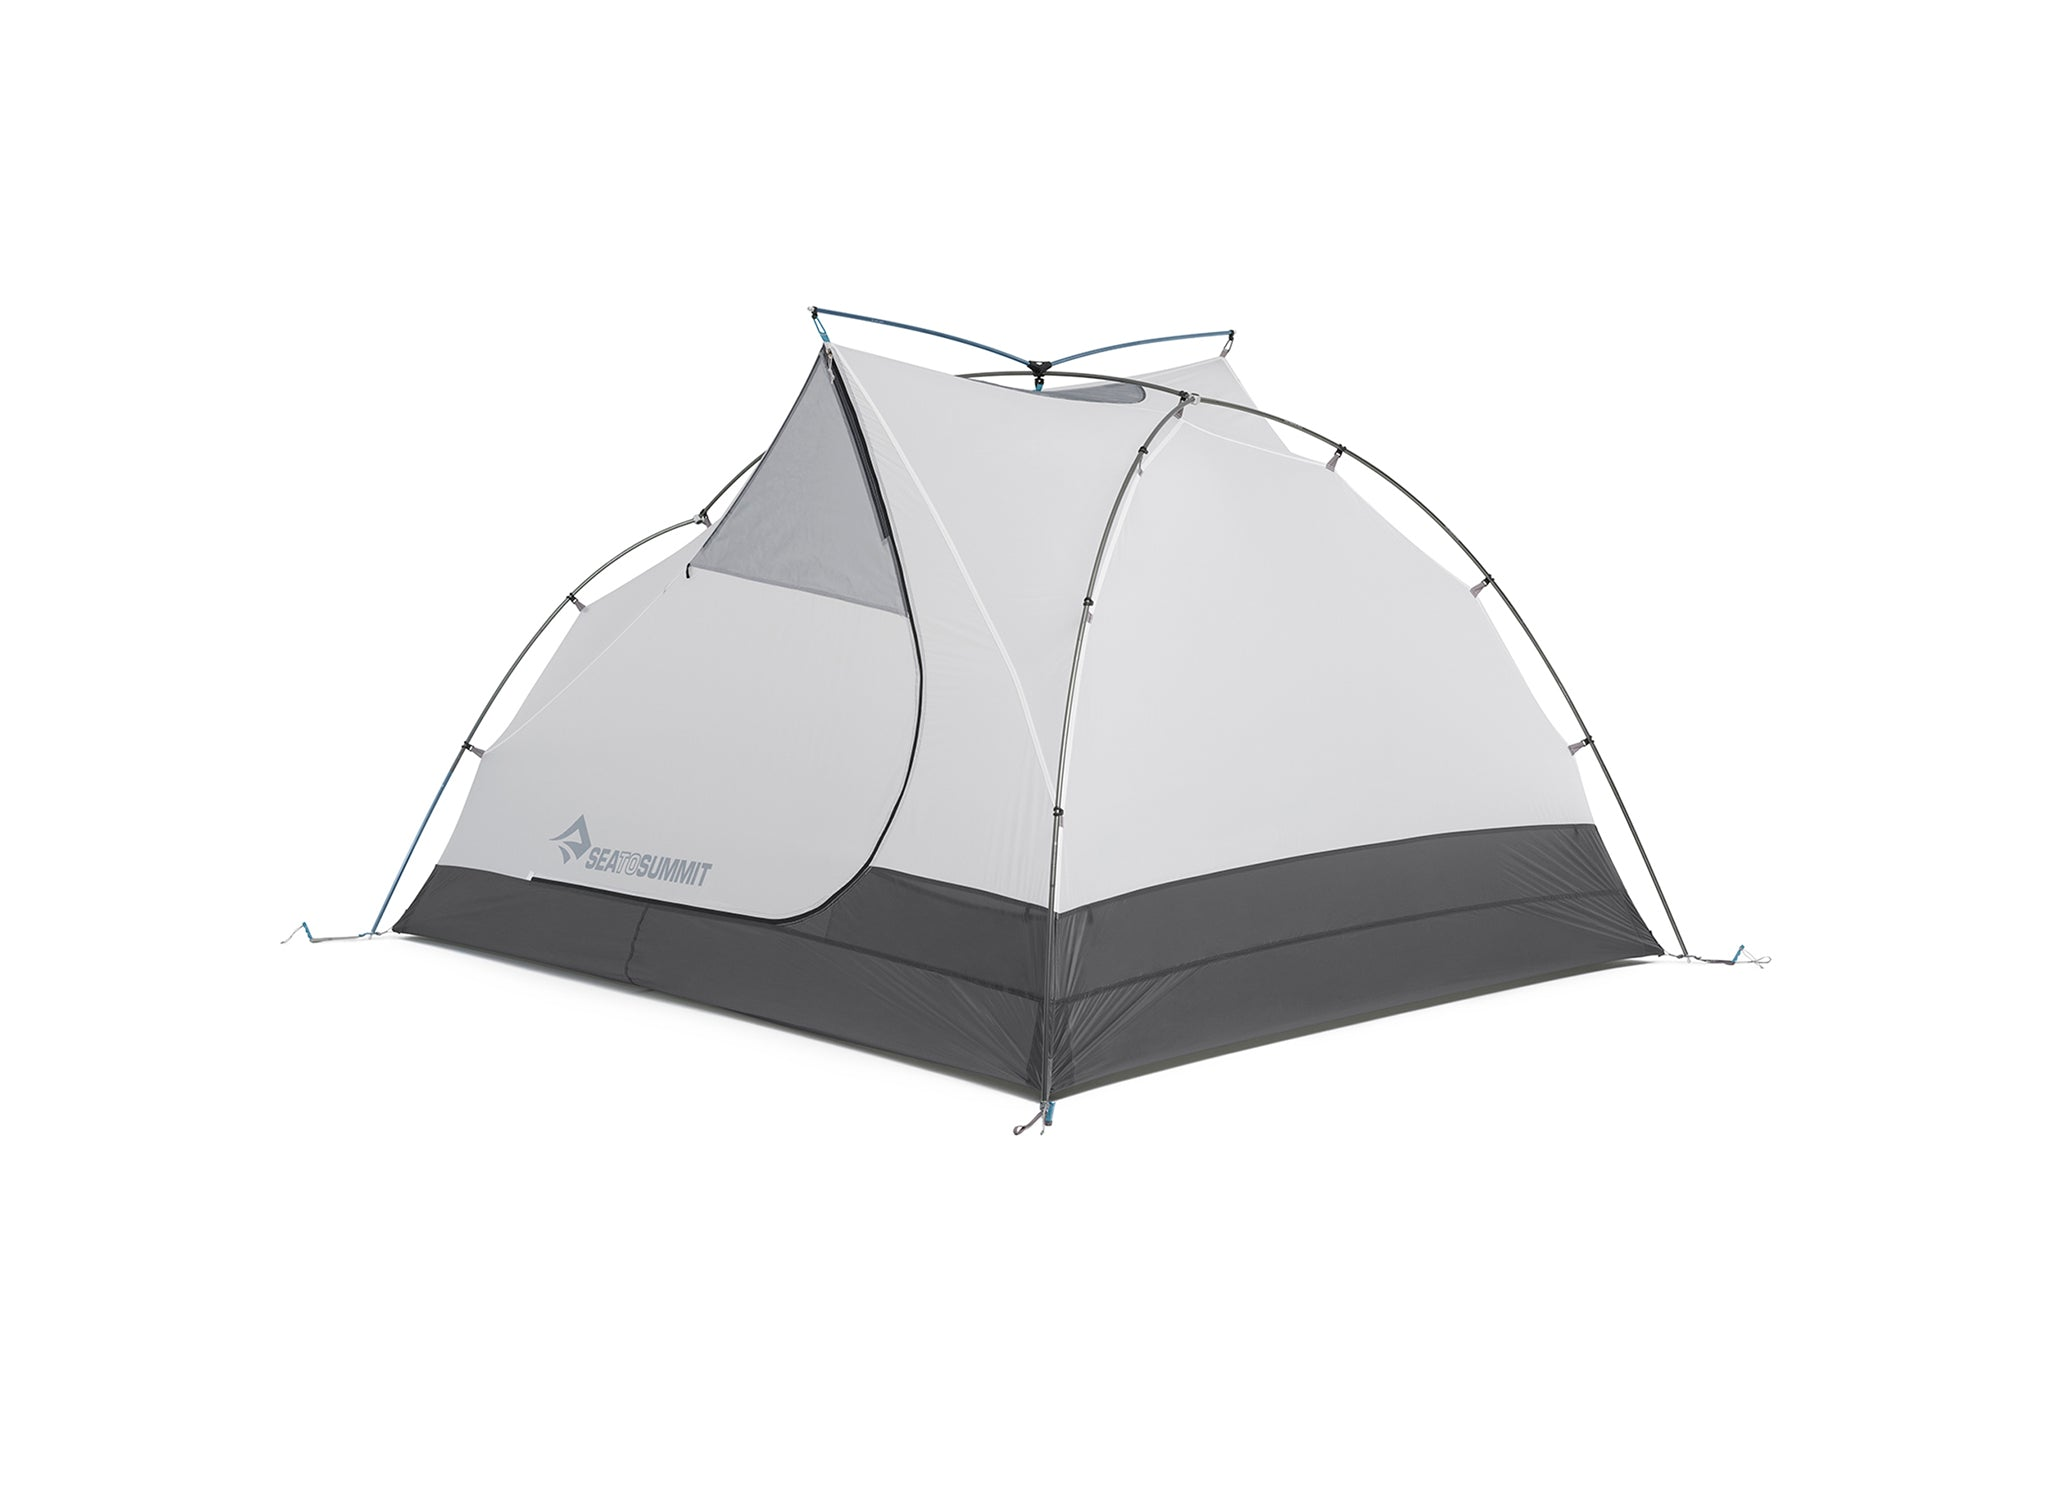 Telos™ TR3 Plus - Three Person Freestanding Tent (3+ Season)